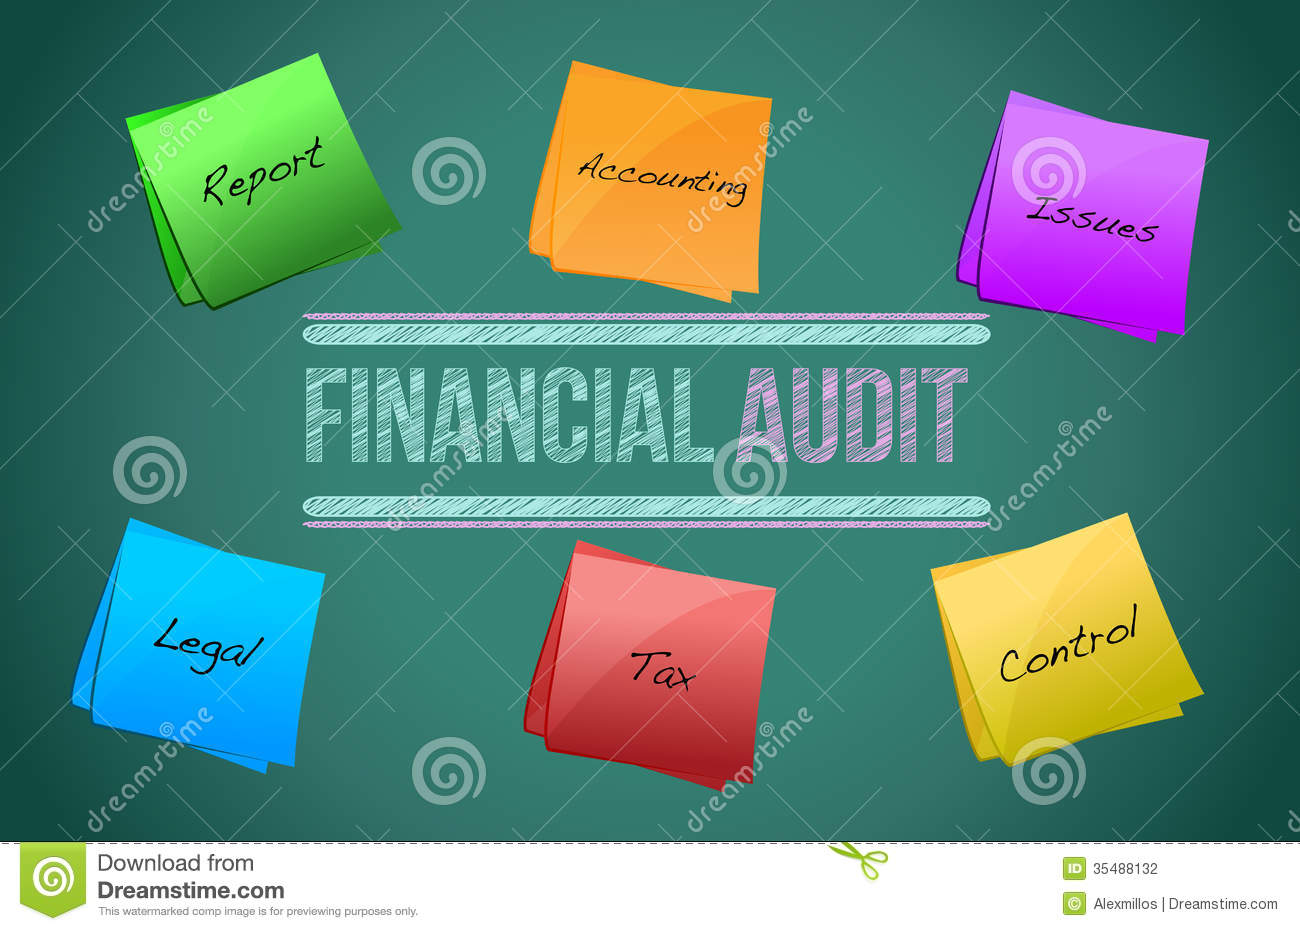 financial-audit-diagram-illustration-des